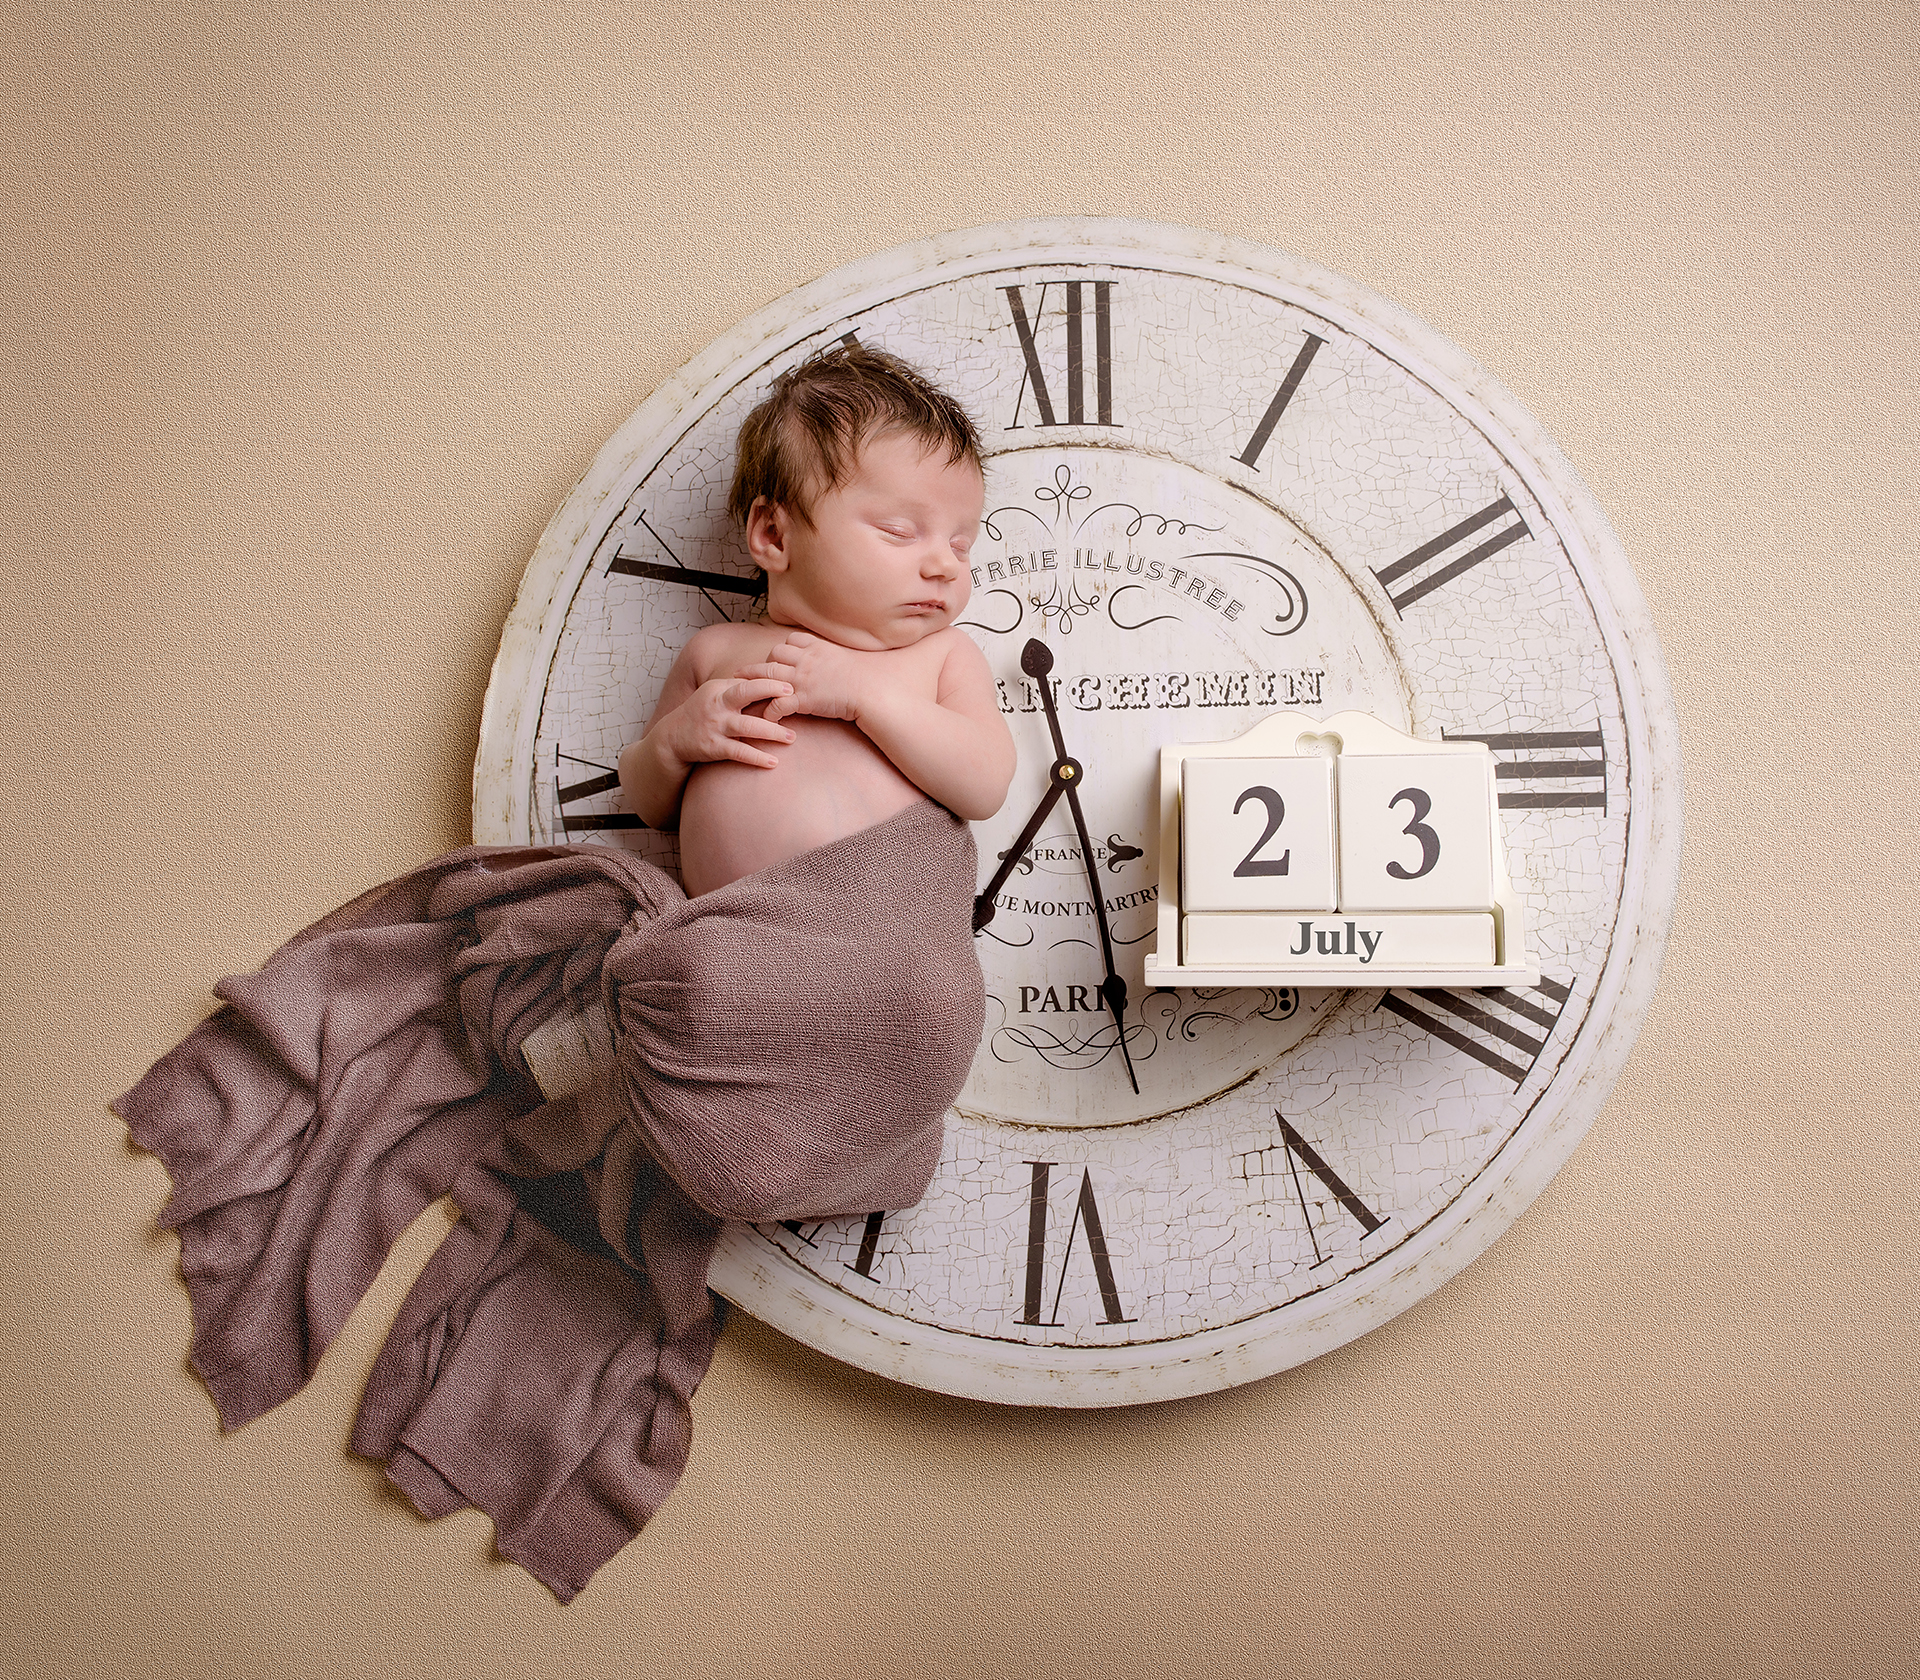 Newborn photography tips – to sleep or not to sleep?